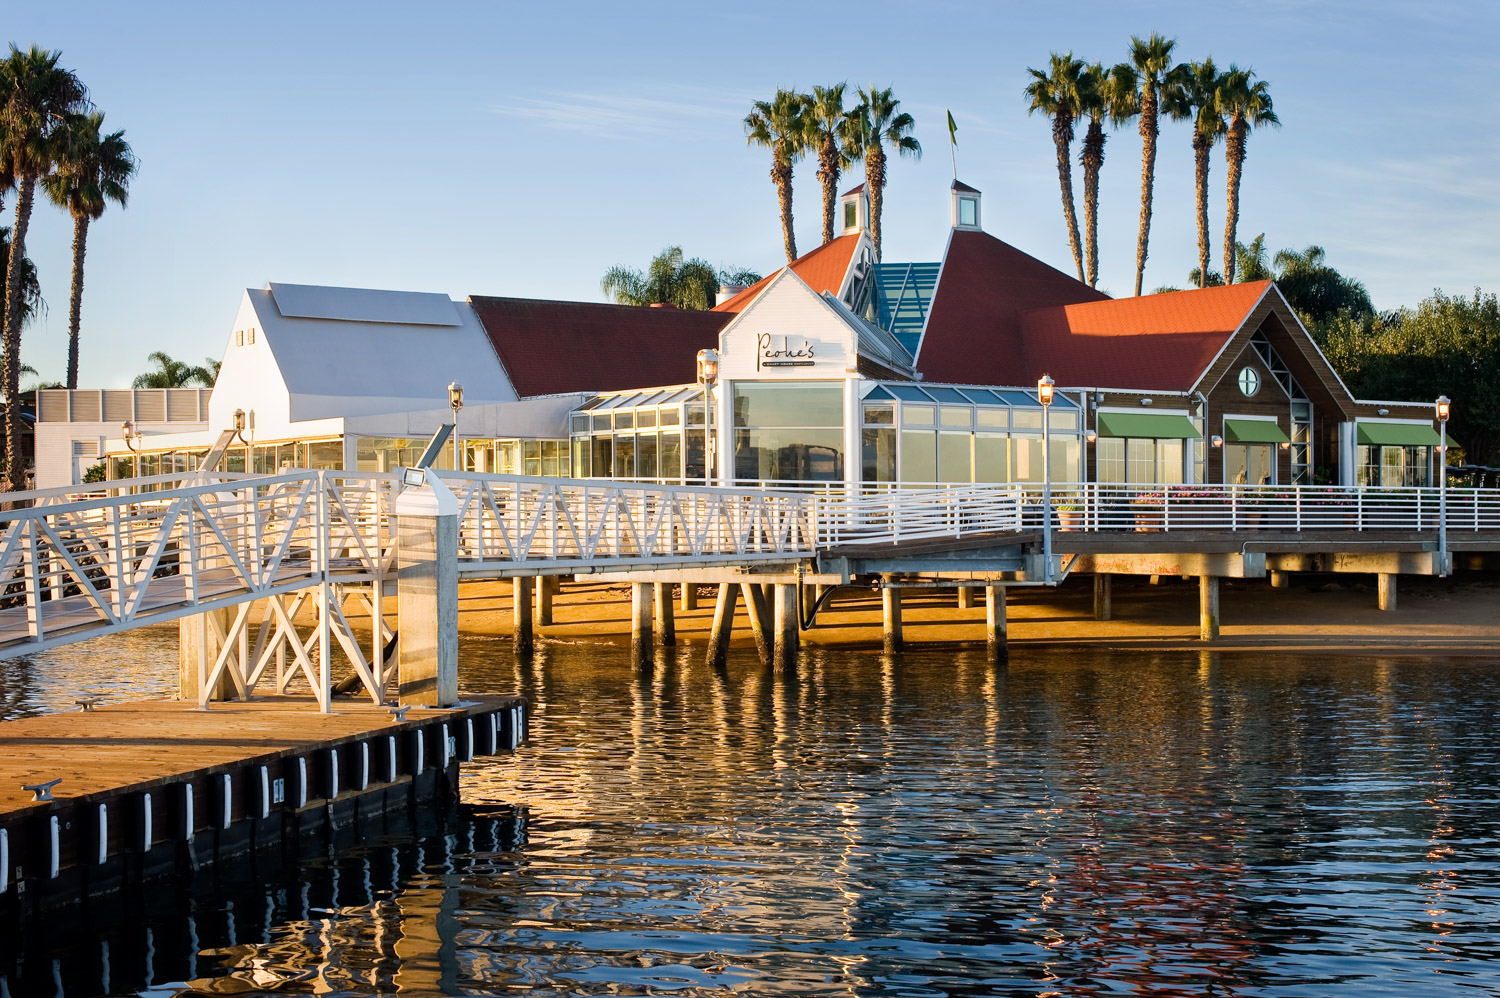 Peohes restaurant exterior in San Diego bay, waterfront restaurant, food photographer